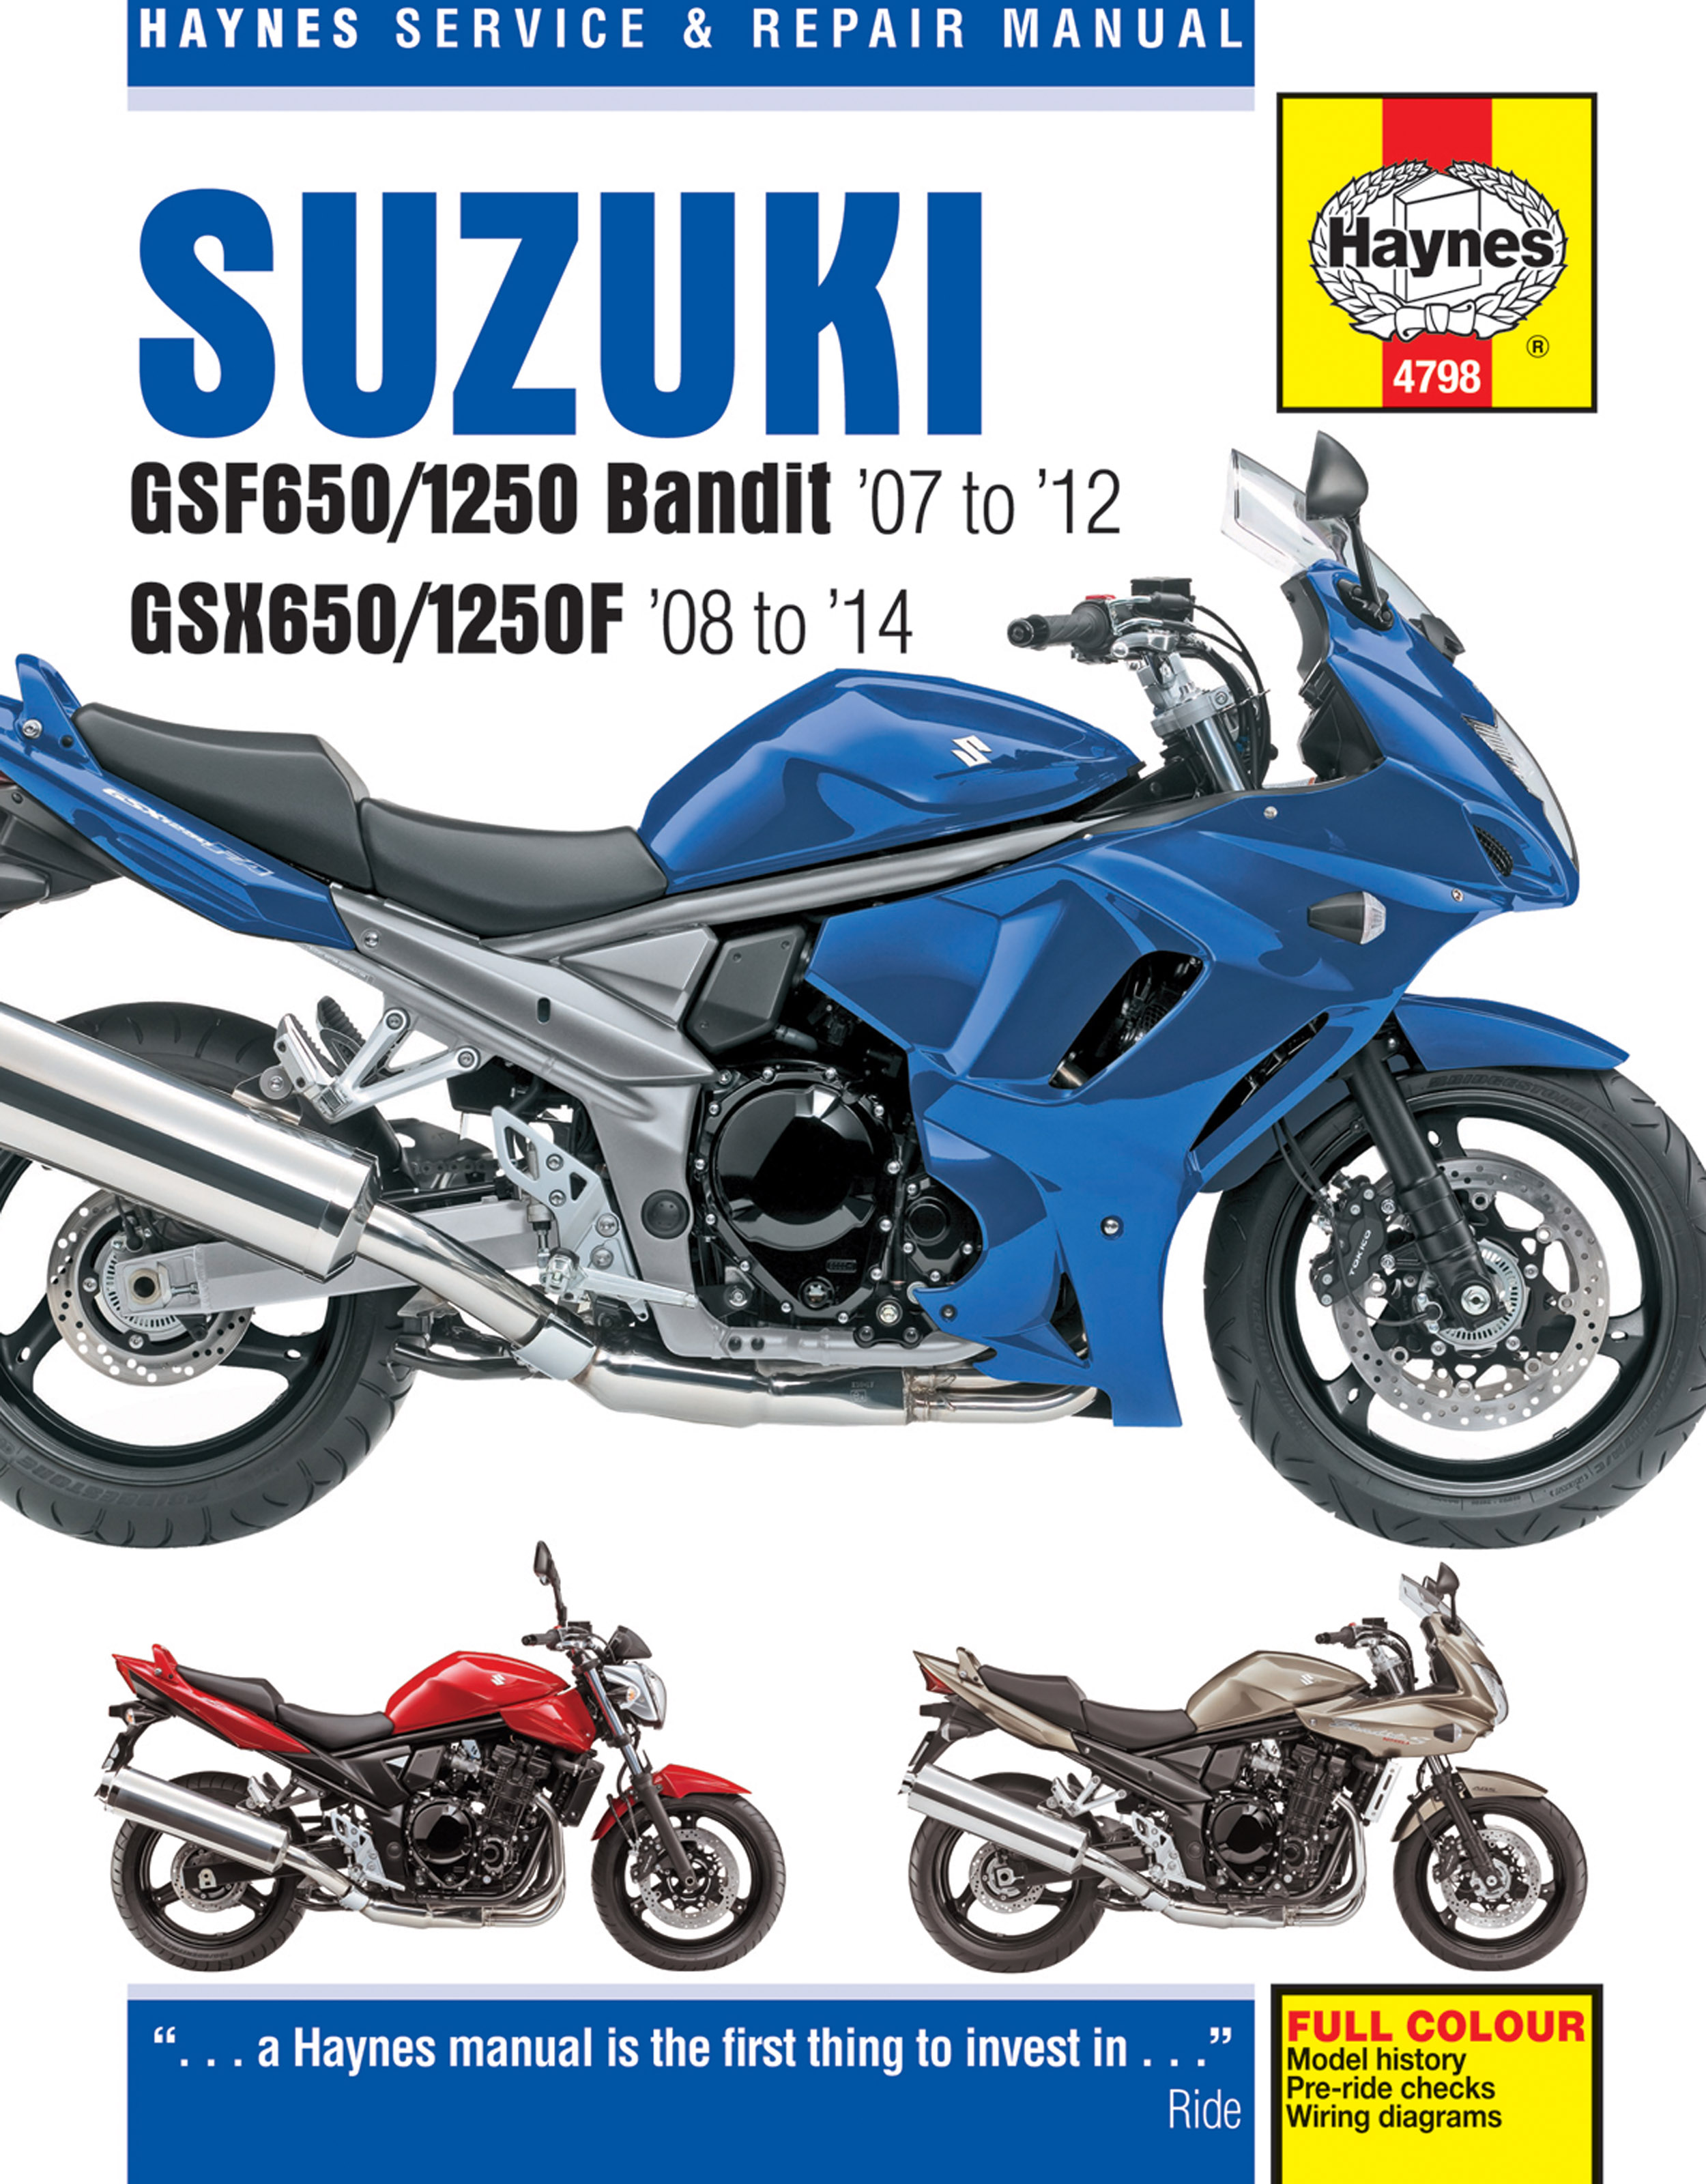 Printed manual. Enlarge Suzuki GSF650/1250 ...